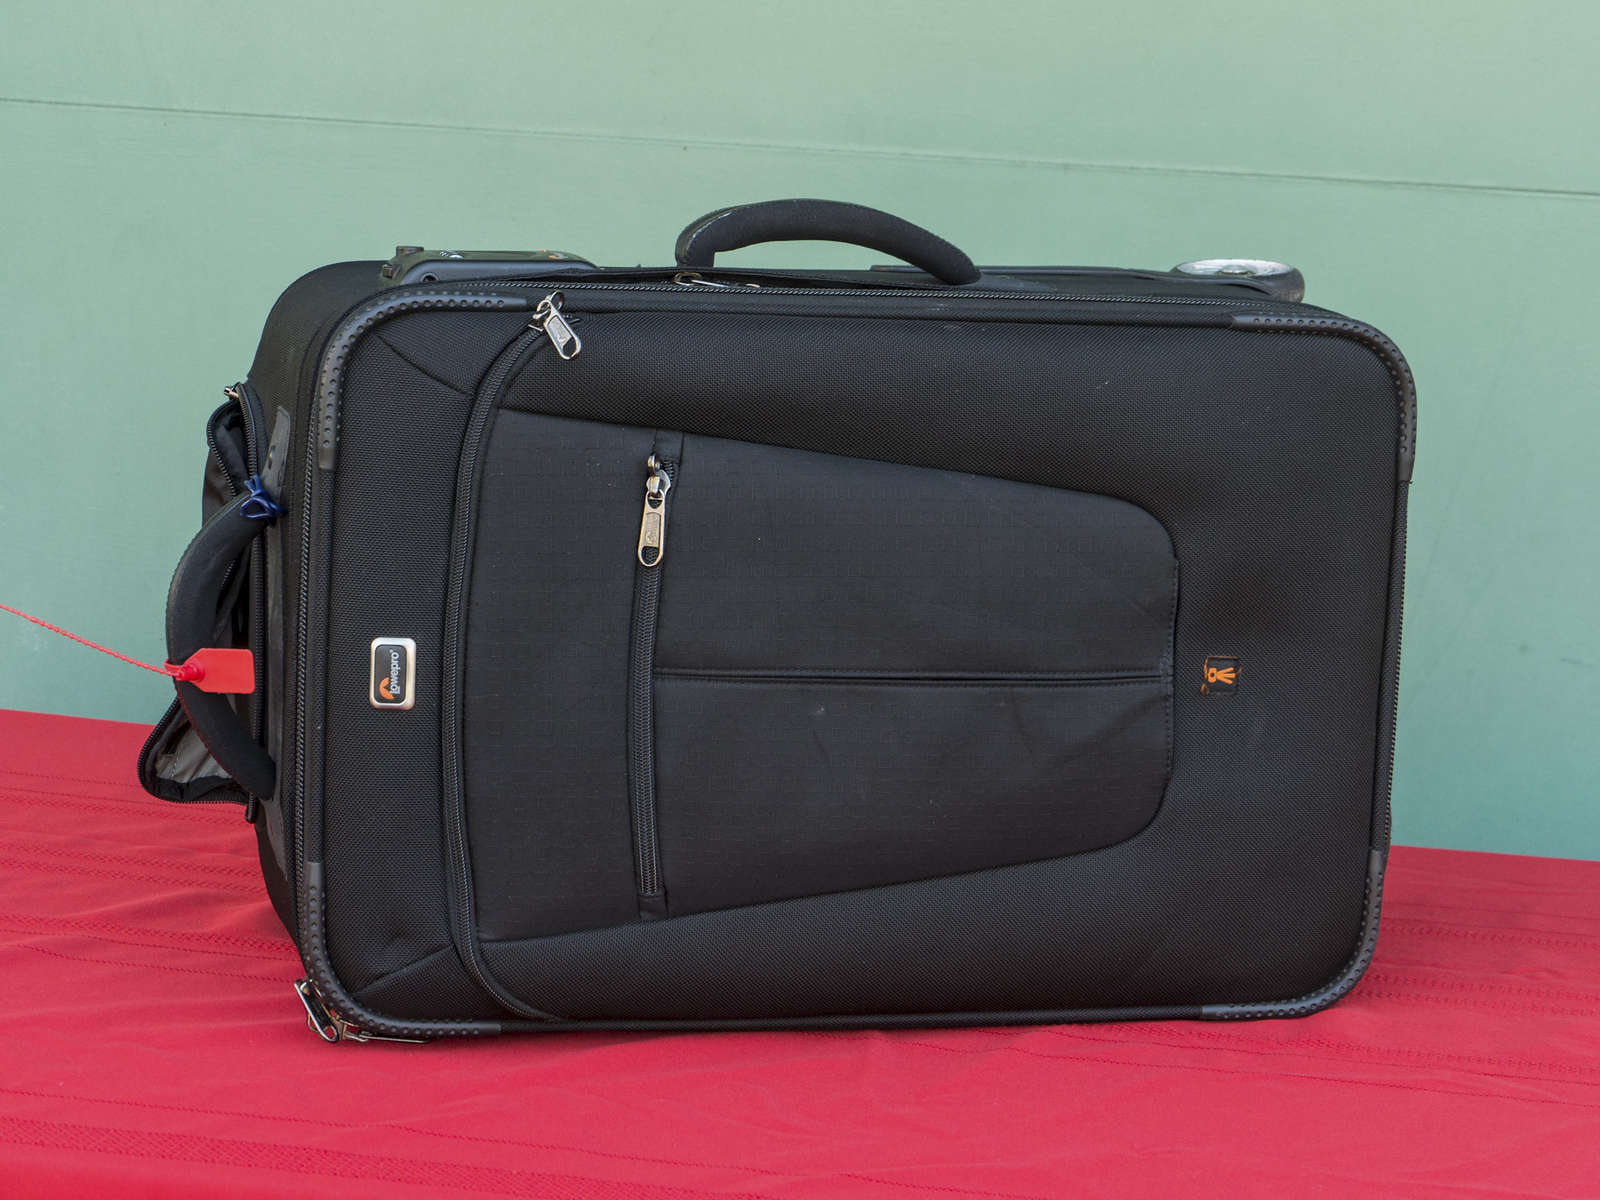 http://store.lowepro.com/pro-roller-x200-aw